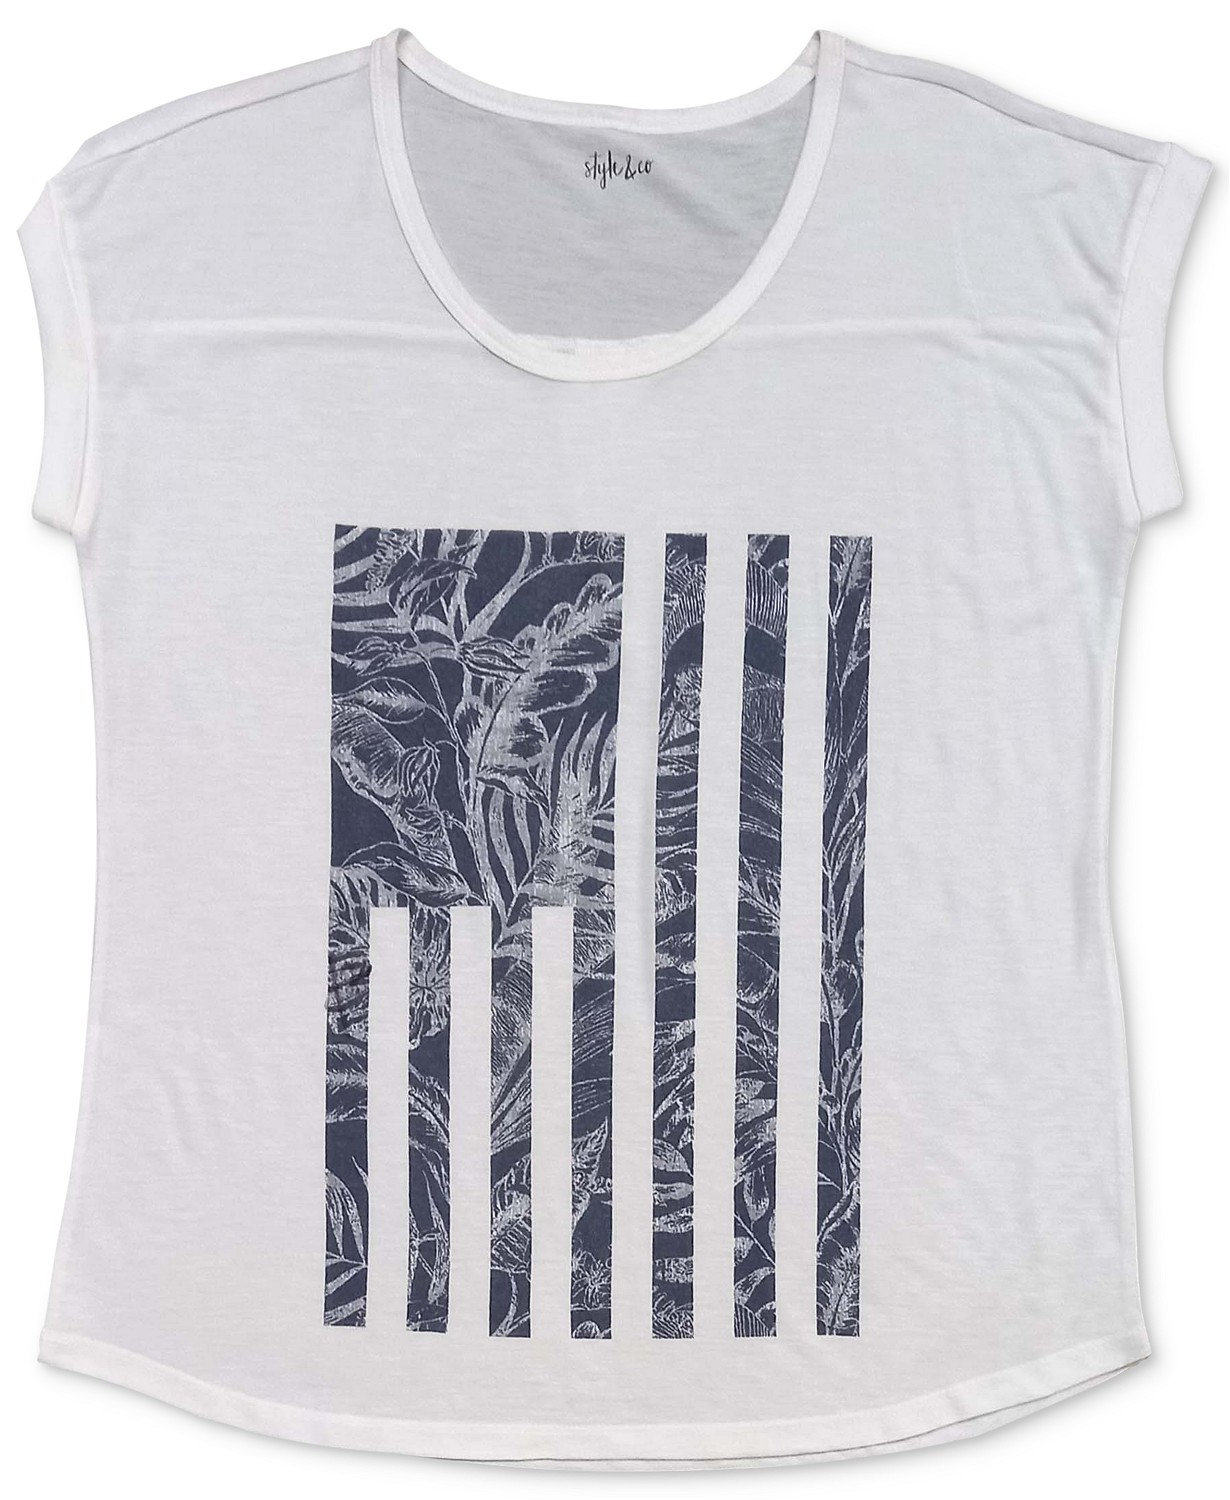 Style & Co Tropical Flag Graphic T-Shirt (Tropical Flag)